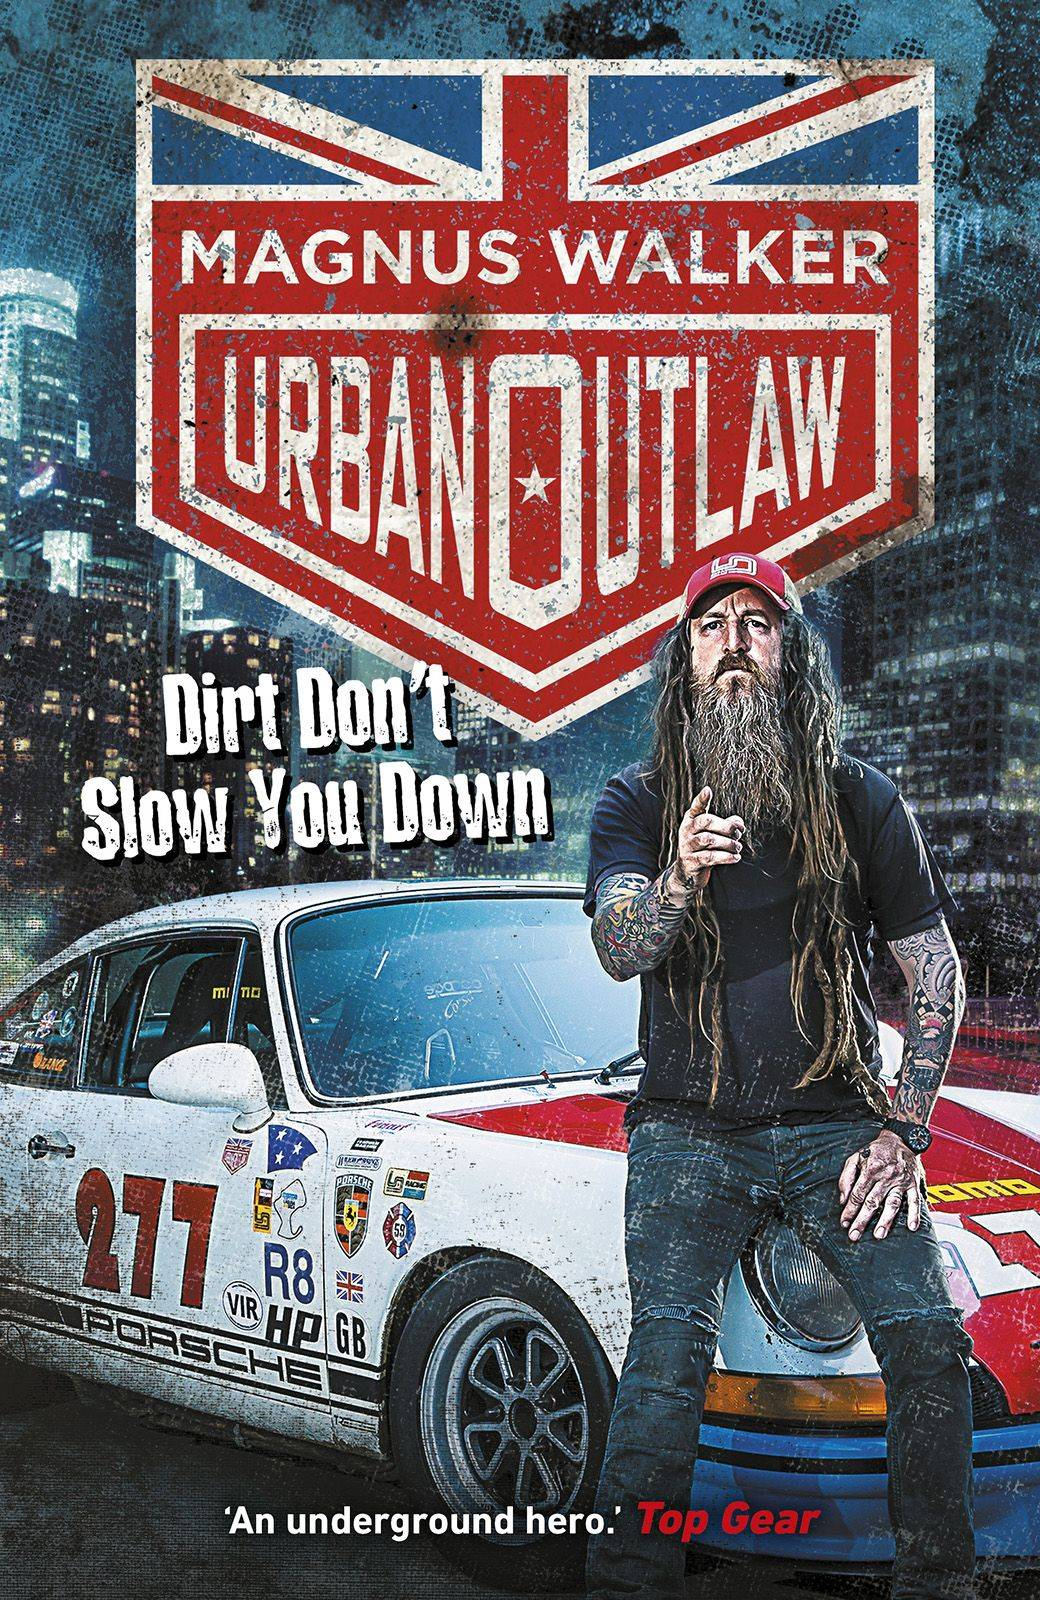 Urban Outlaw: Dirt Don't Slow You Down